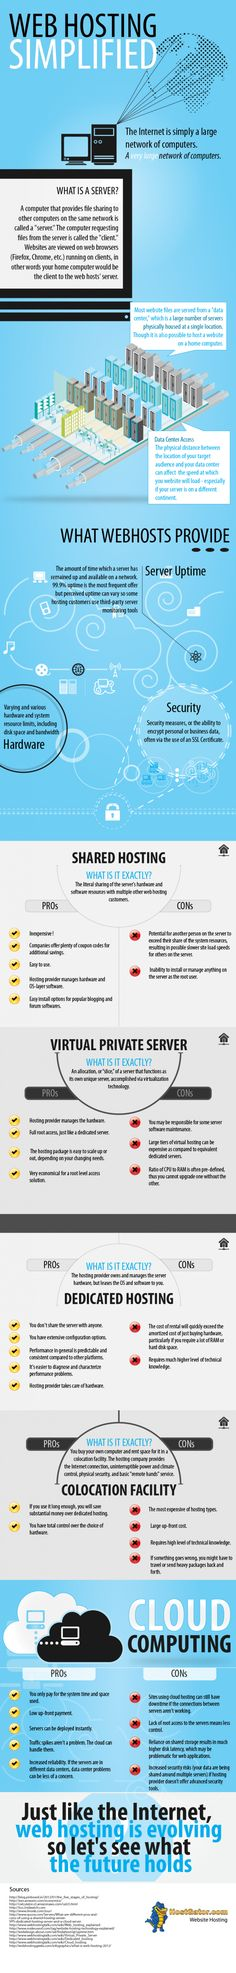 Web hosting simplified #infographic